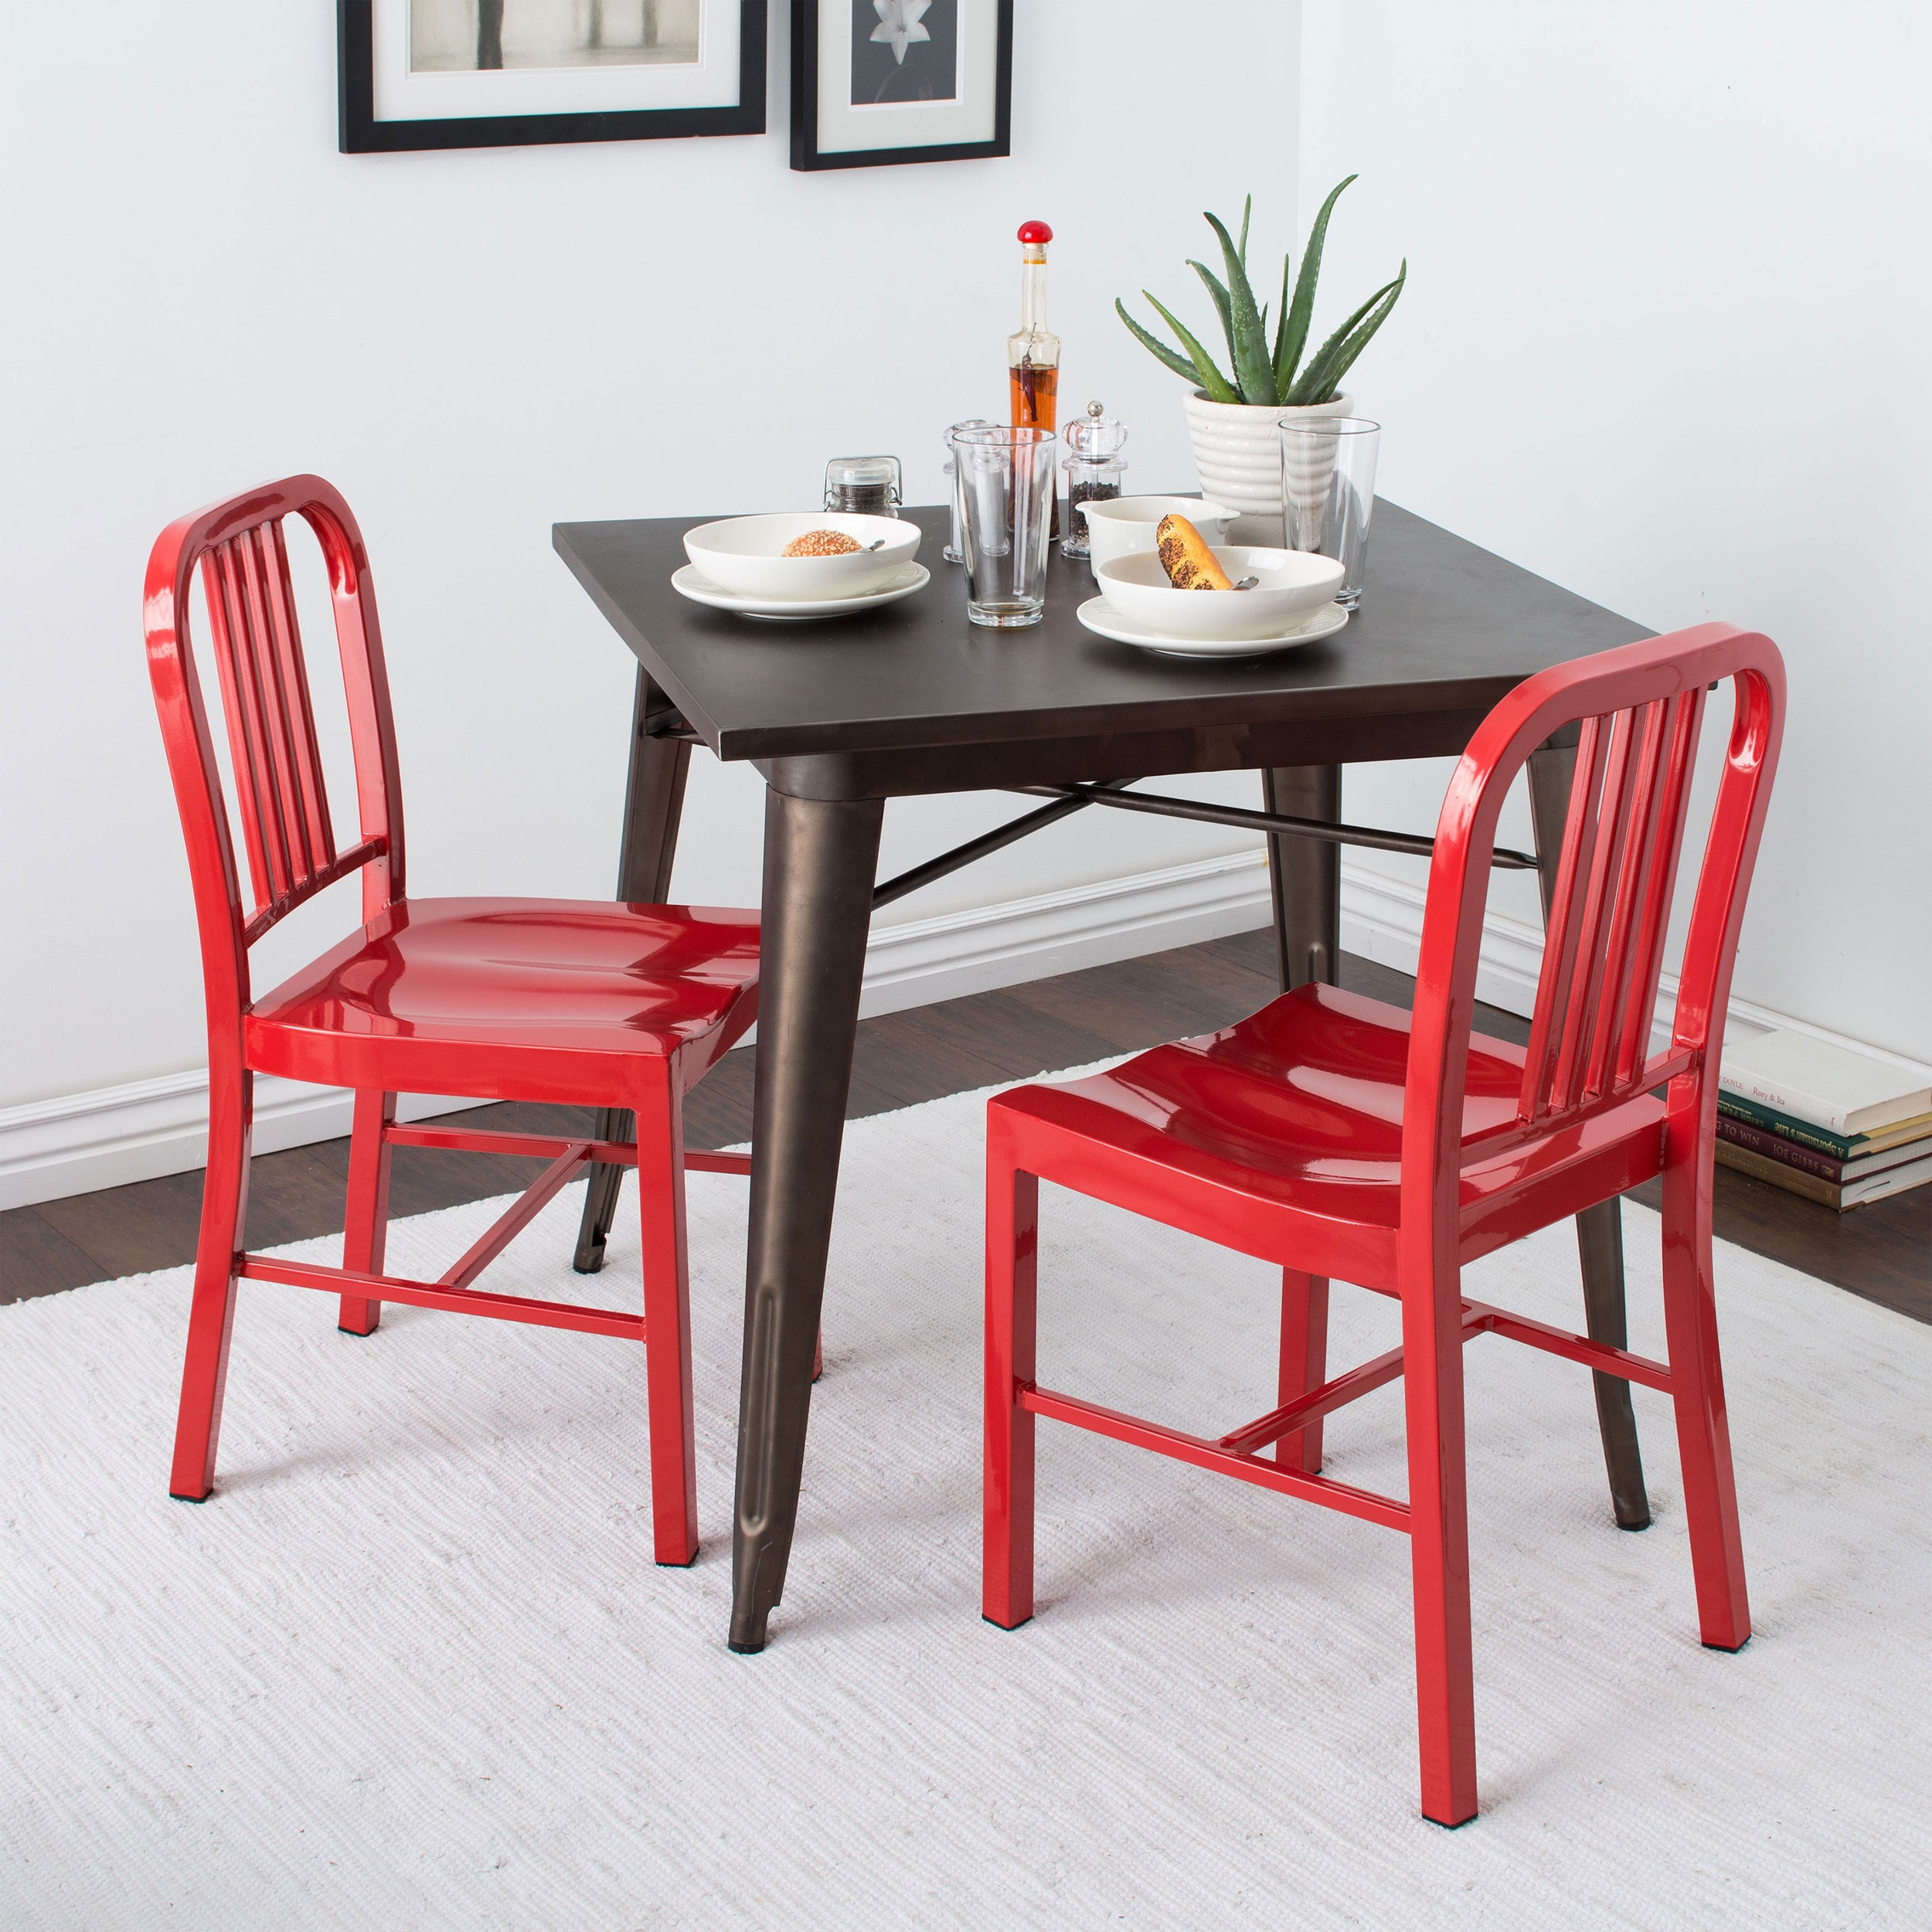 Gentil Shop Red Metal Dining Chairs (Set Of 2)   Free Shipping Today    Overstock.com   5954034